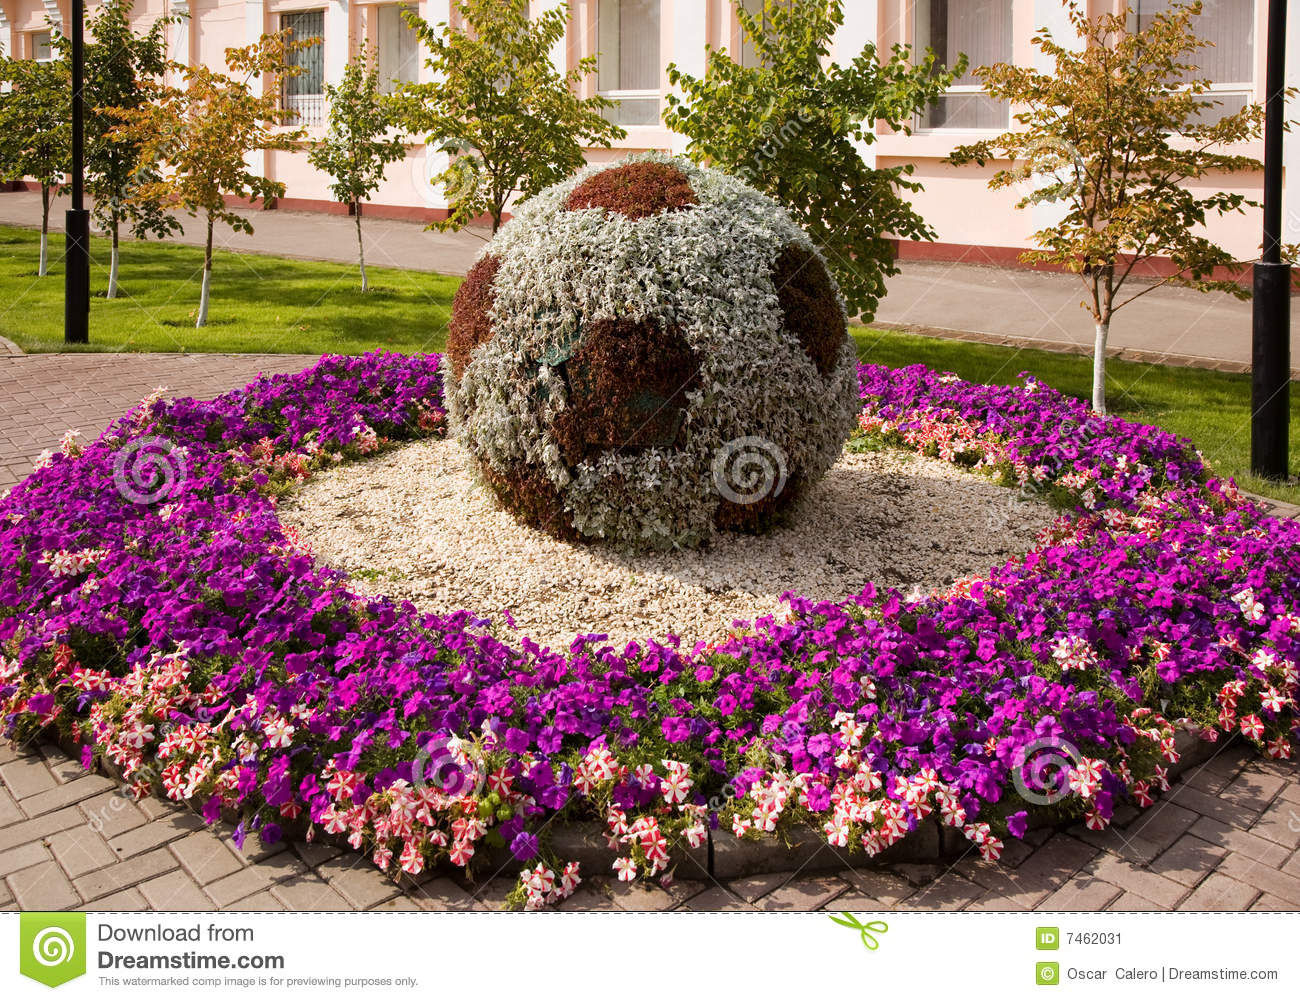 As flores sculpture em Astana